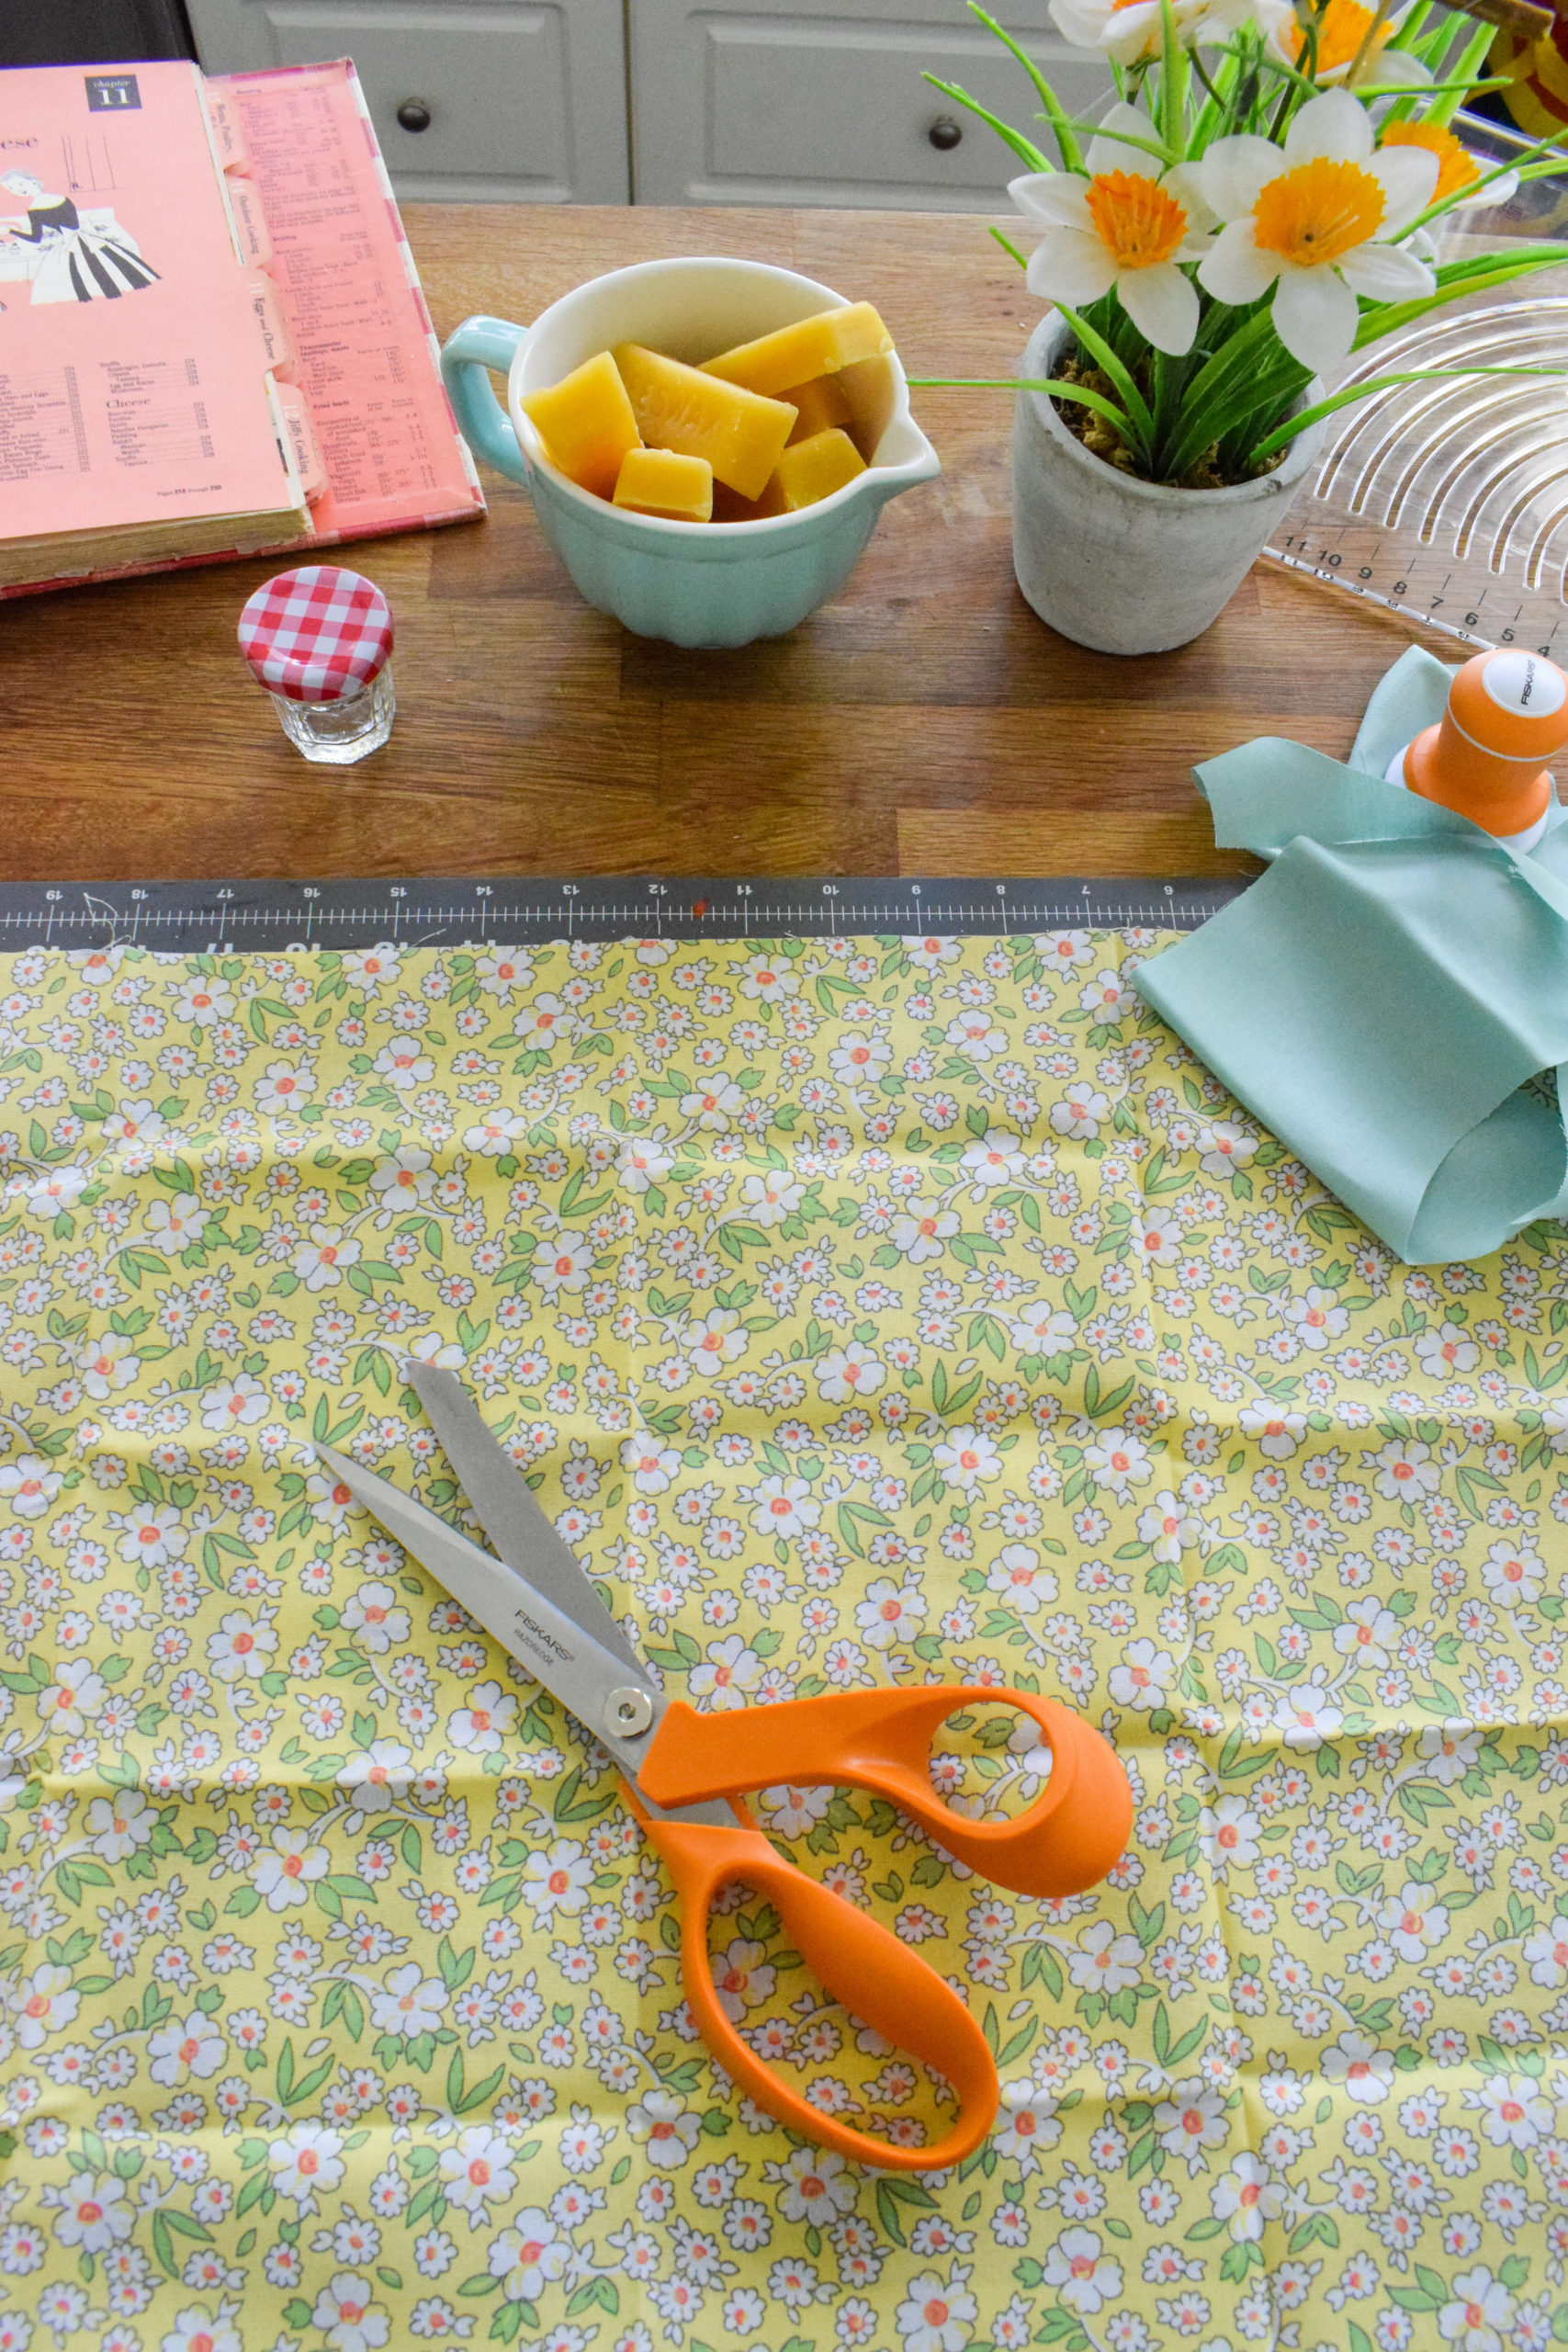 DIY beeswax food wrap is an easy first step you can take towards reducing your household waste. Bonus, it's easy to make!